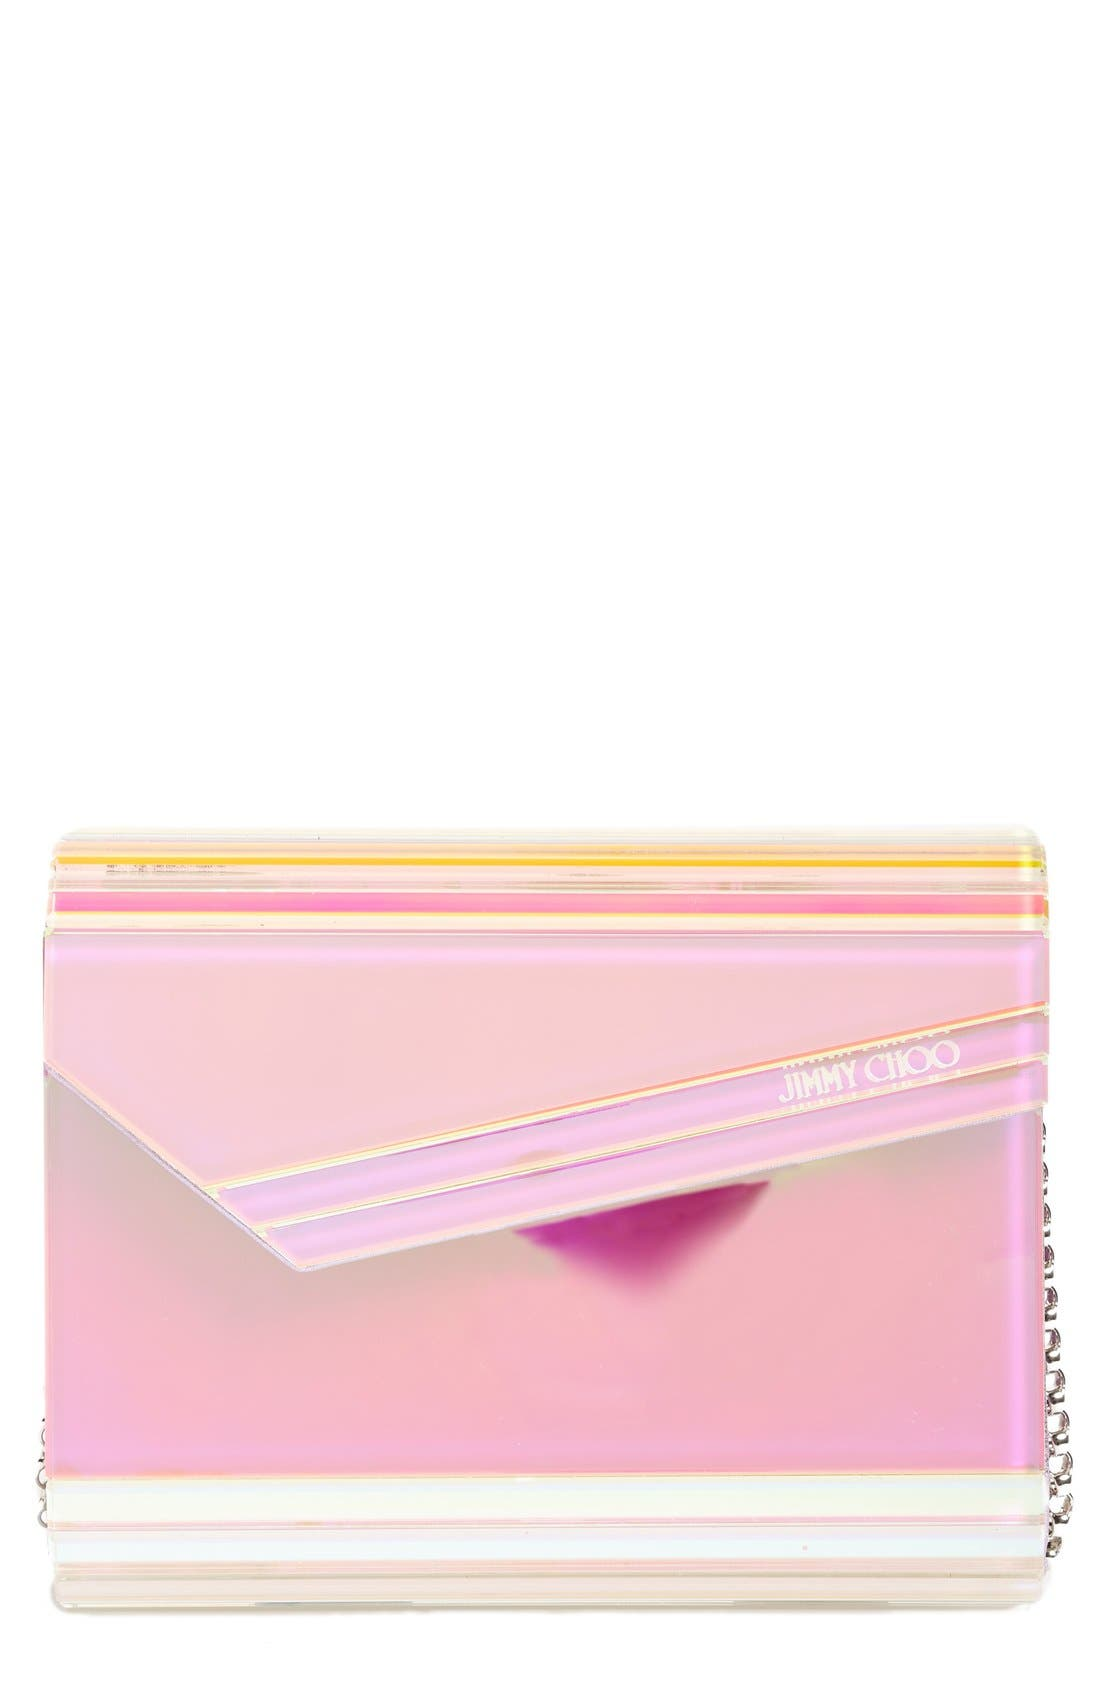 Main Image - Jimmy Choo Candy Holographic Clutch